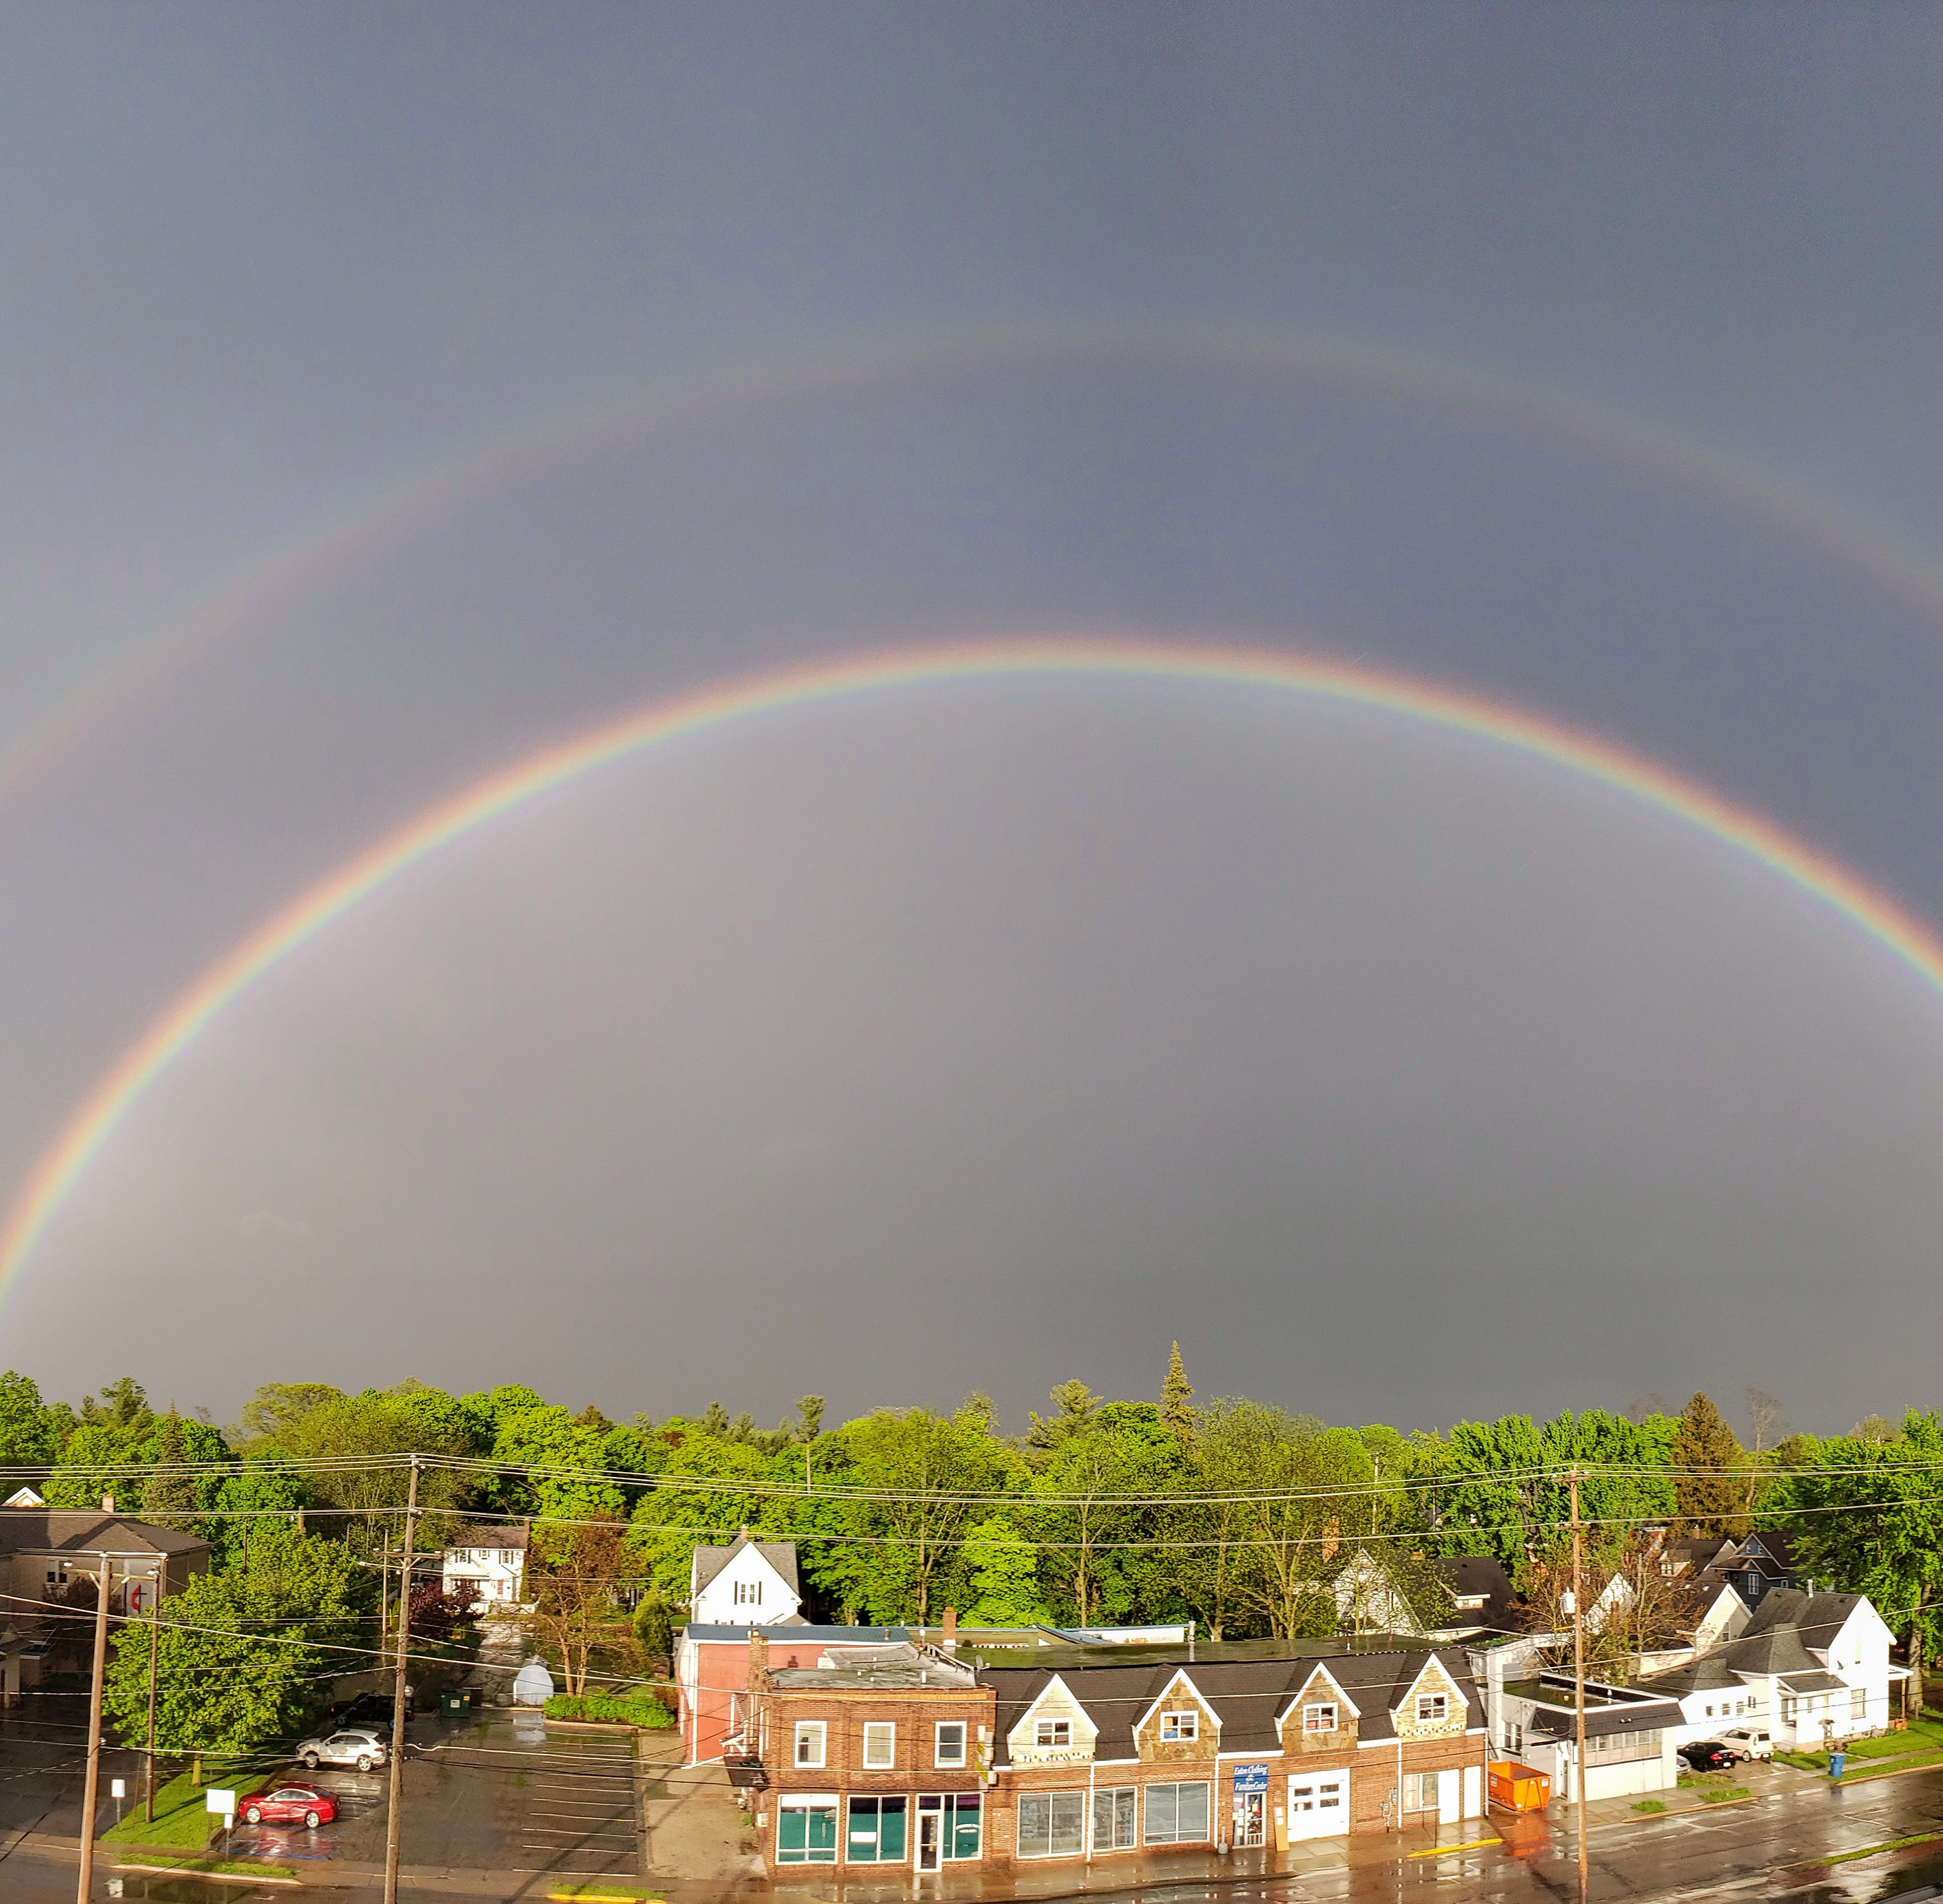 Double rainbow mystifies Lansing region after tornado warning. How rare are these?